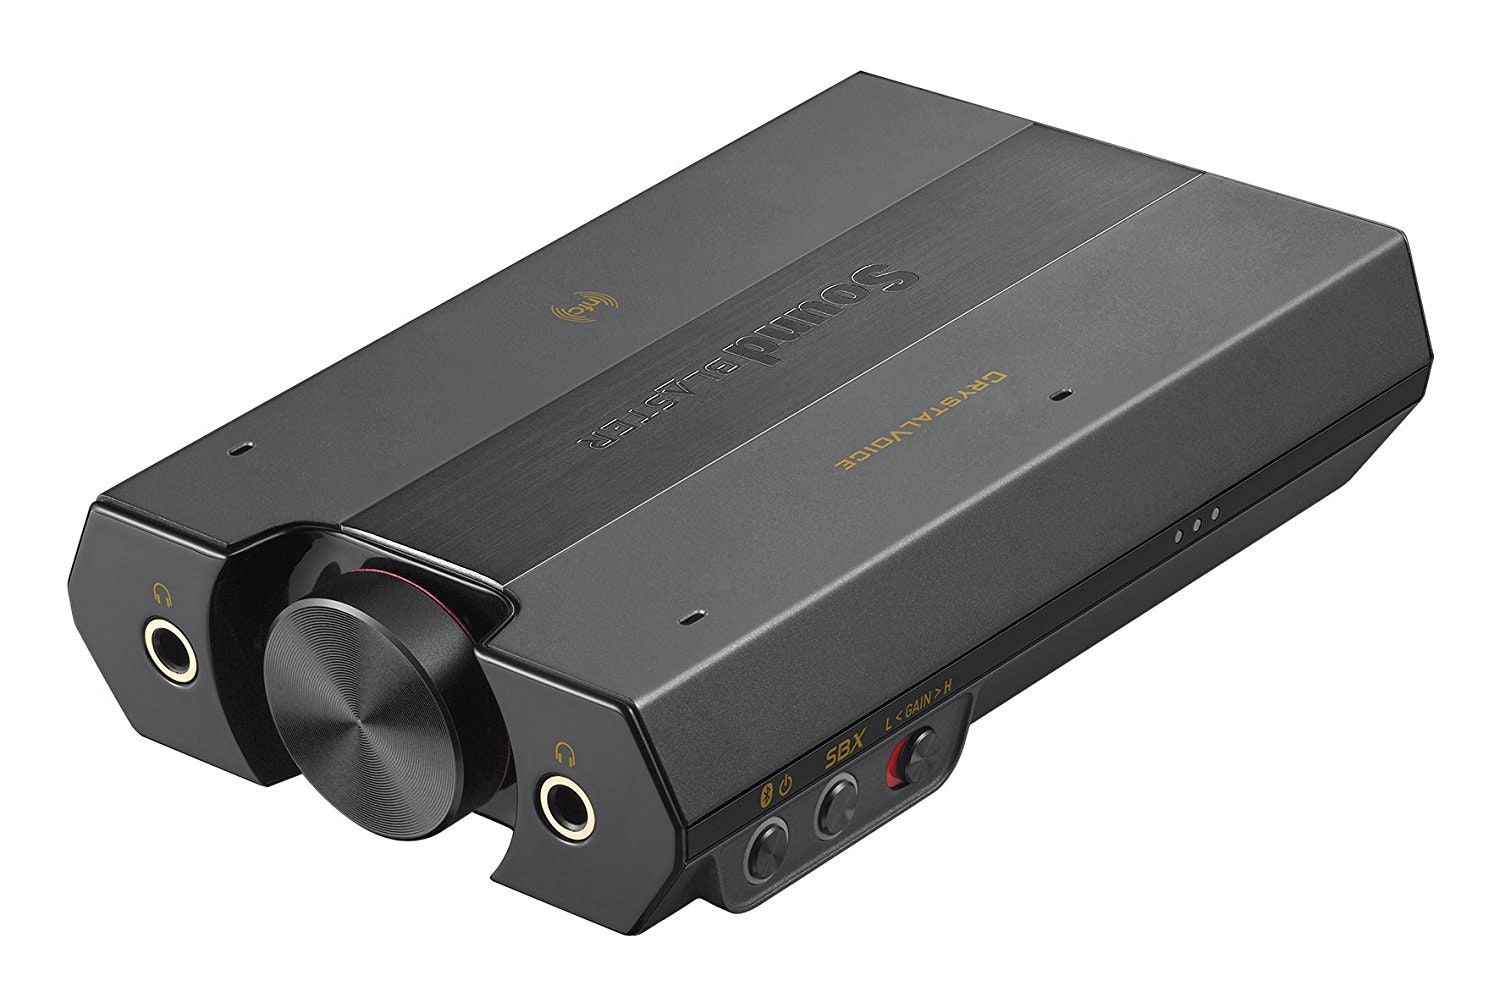 Creative Sound Blaster E5 High-Resolution USB DAC 600 ohm Headphone Amplifier wi